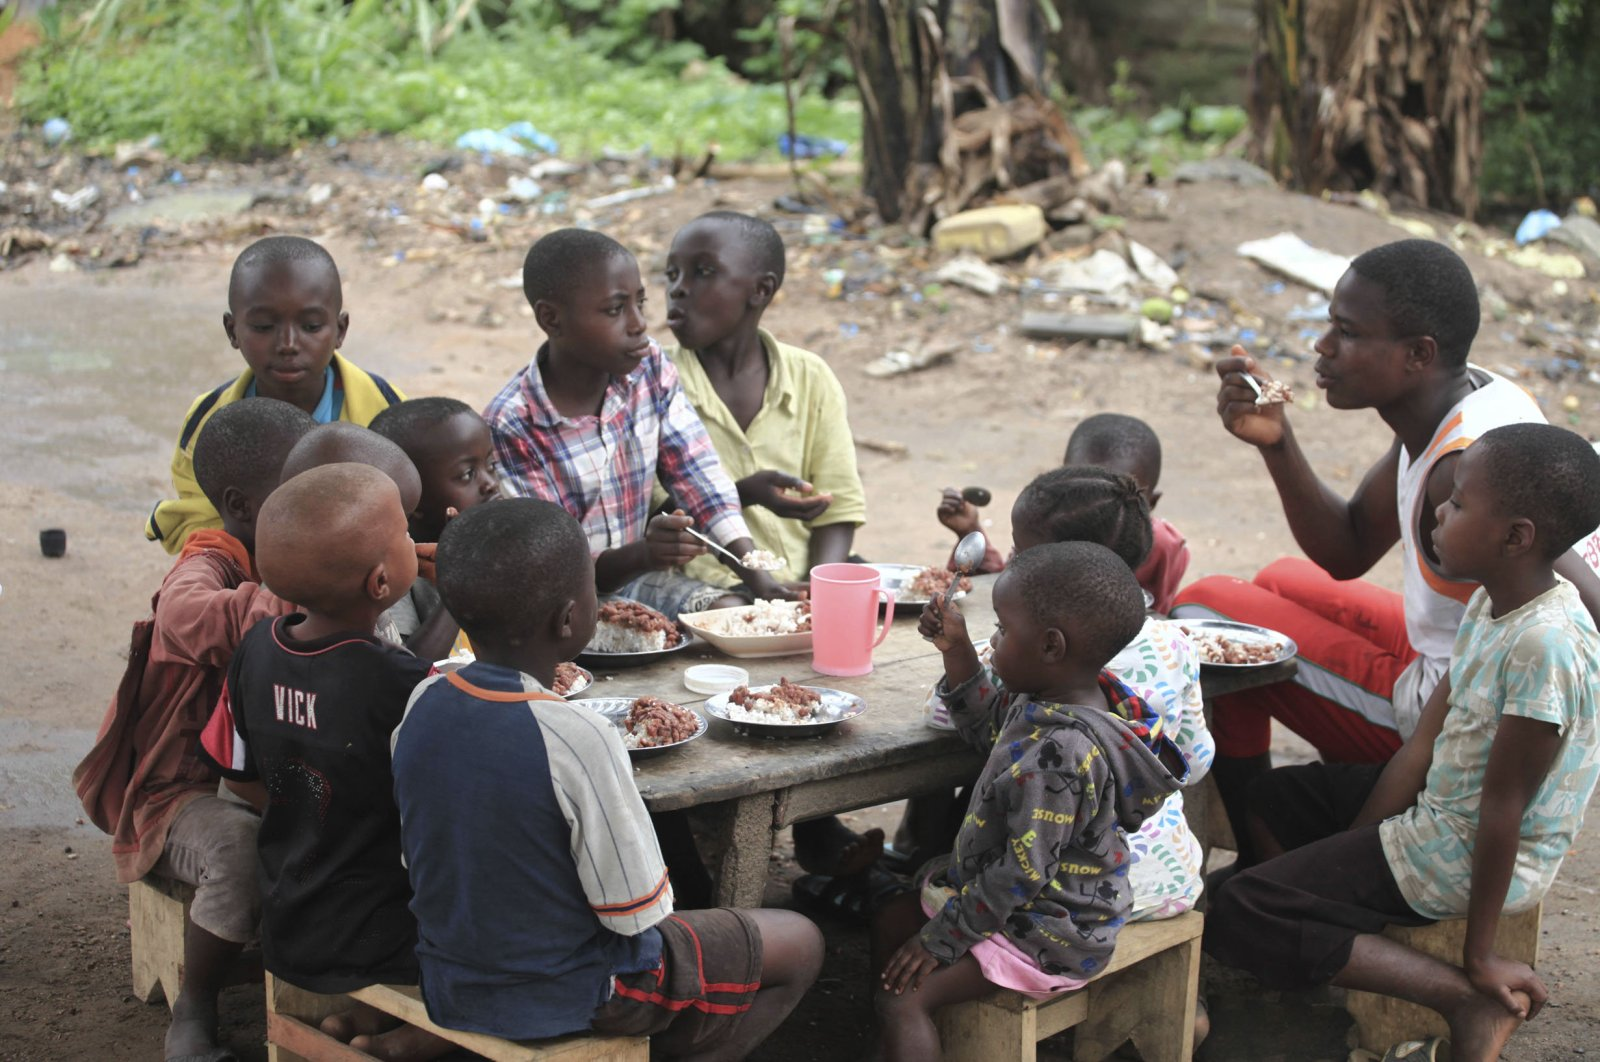 Children orphaned in attacks by rebel groups eat under a tree after being taken in by a local woman, in eastern Democratic Republic of Congo, June 4, 2018. (AP Photo)